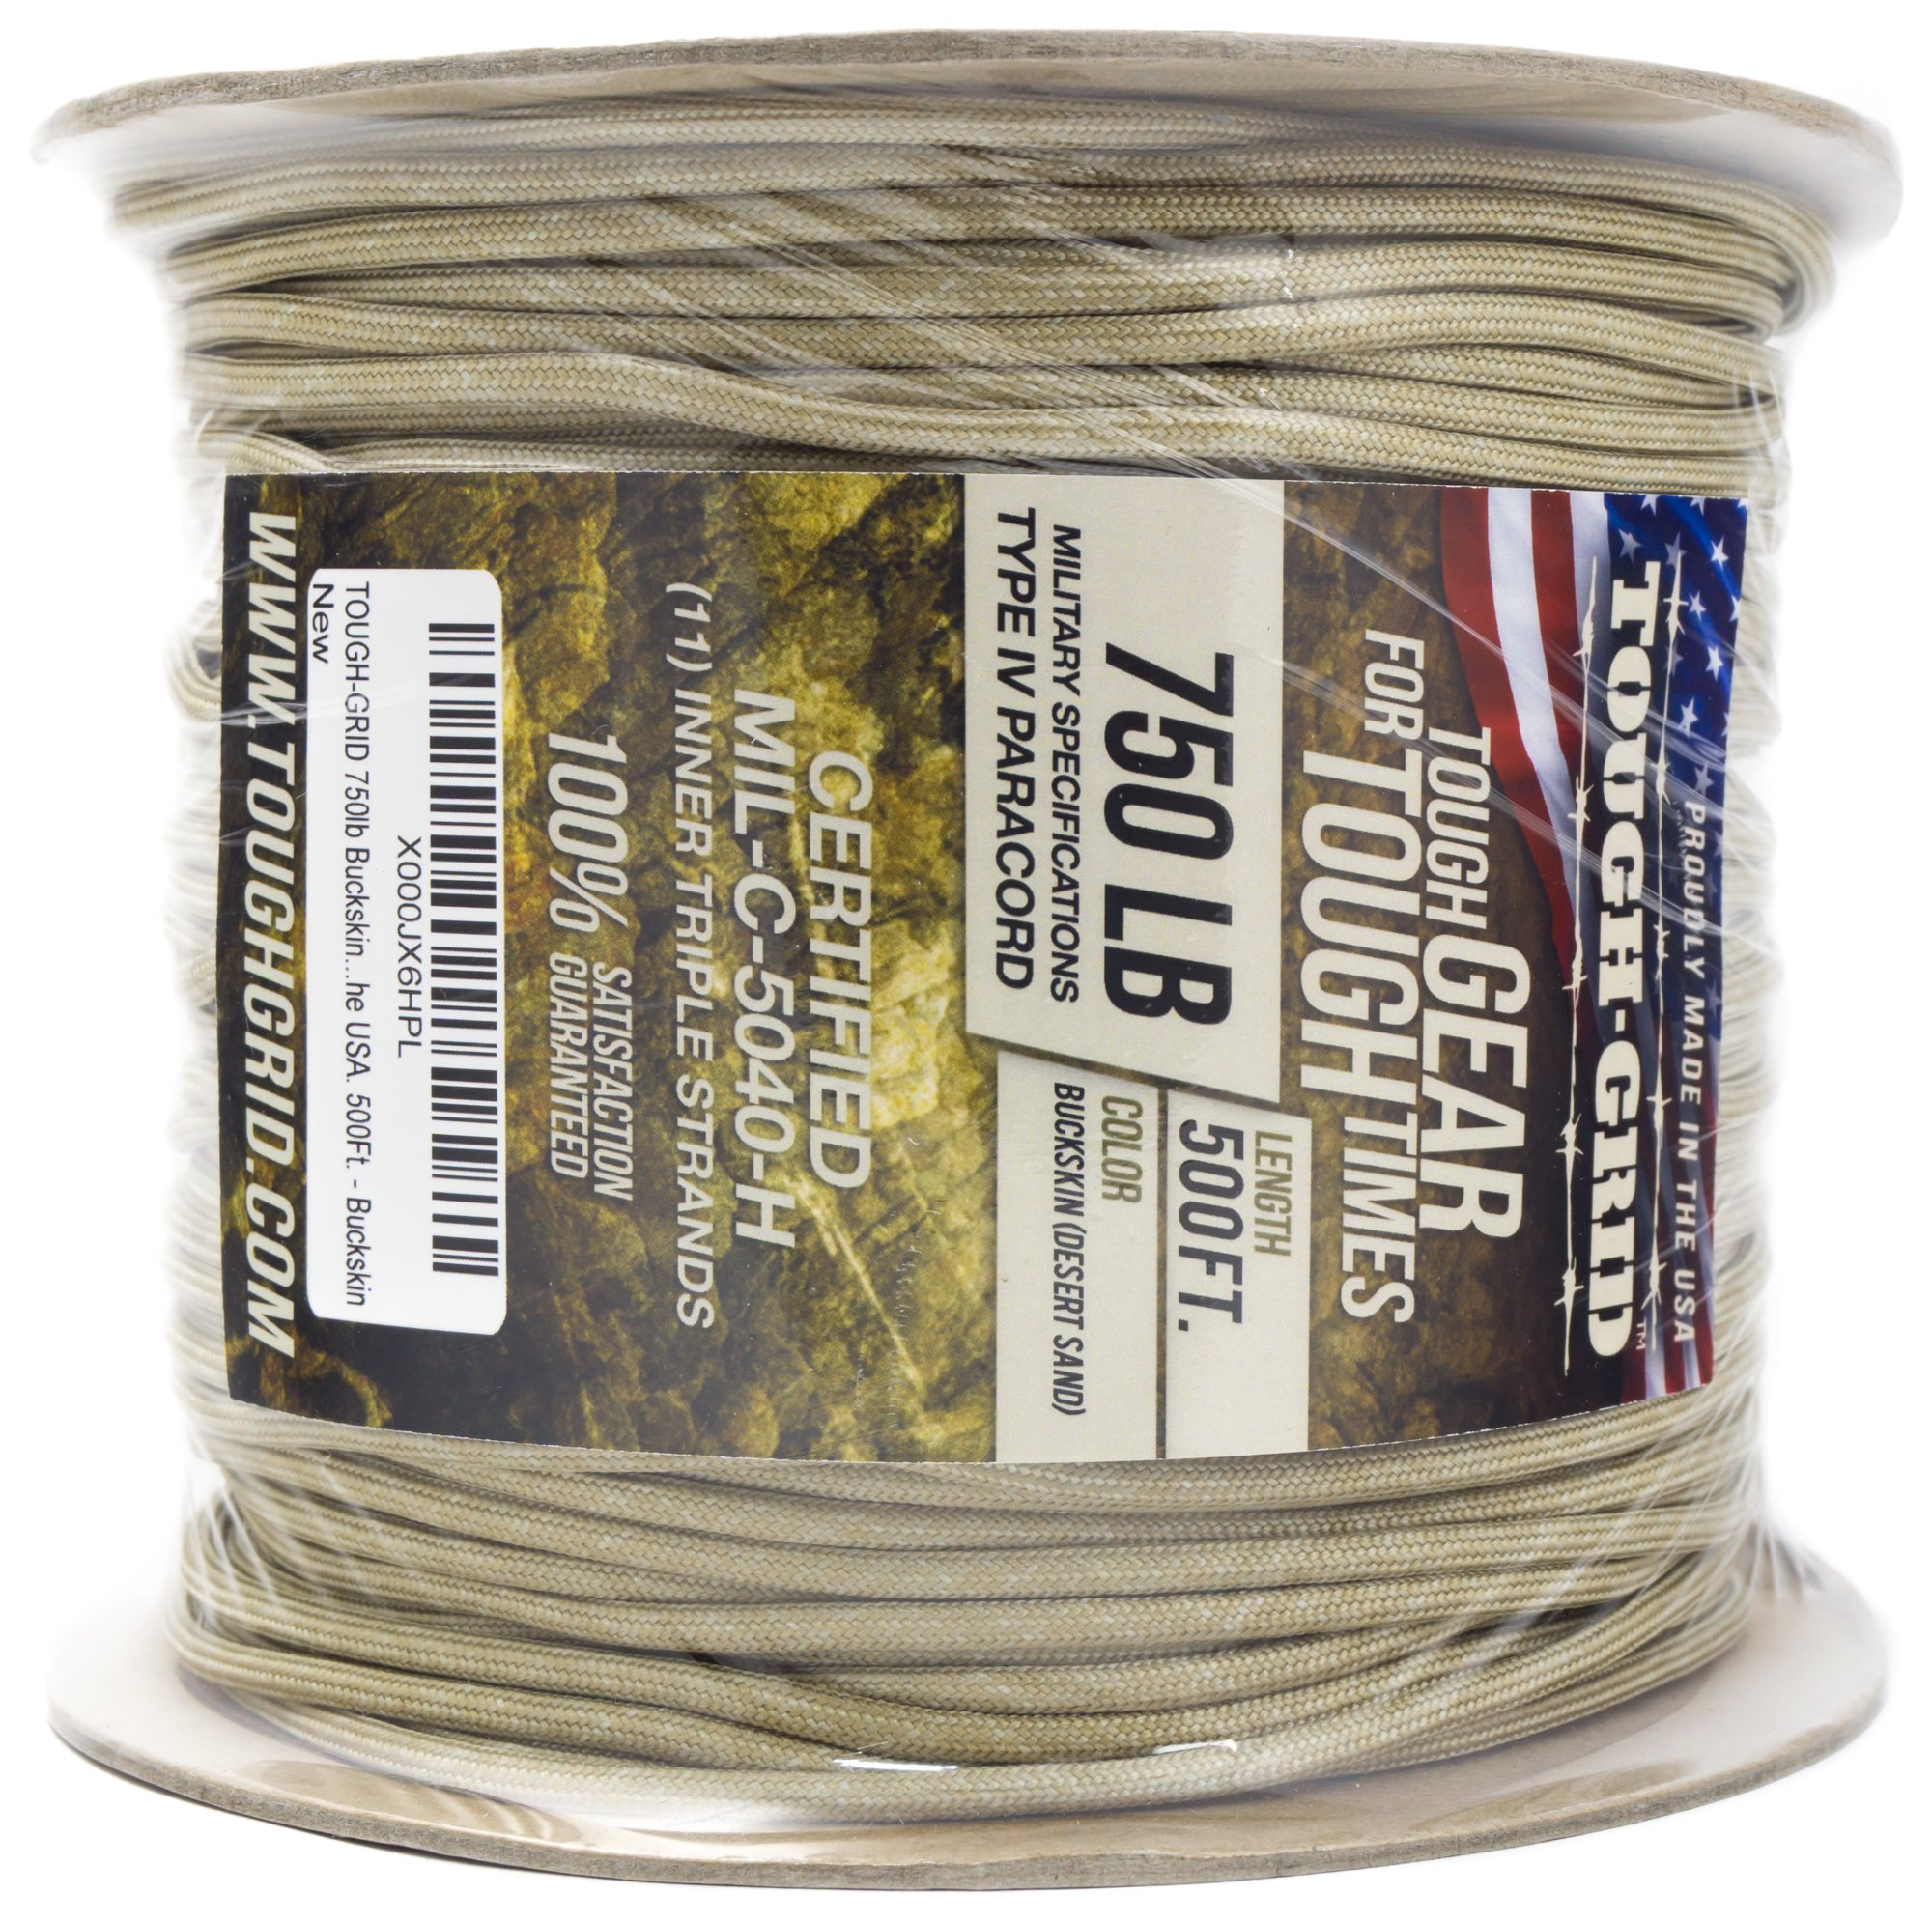 TOUGH-GRID 750lb Buckskin (Desert Sand) Paracord/Parachute Cord - Genuine Mil Spec Type IV 750lb Paracord Used by The US Military (MIl-C-5040-H) - 100% Nylon - Made in The USA. 500Ft. - Buckskin by TOUGH-GRID (Image #10)